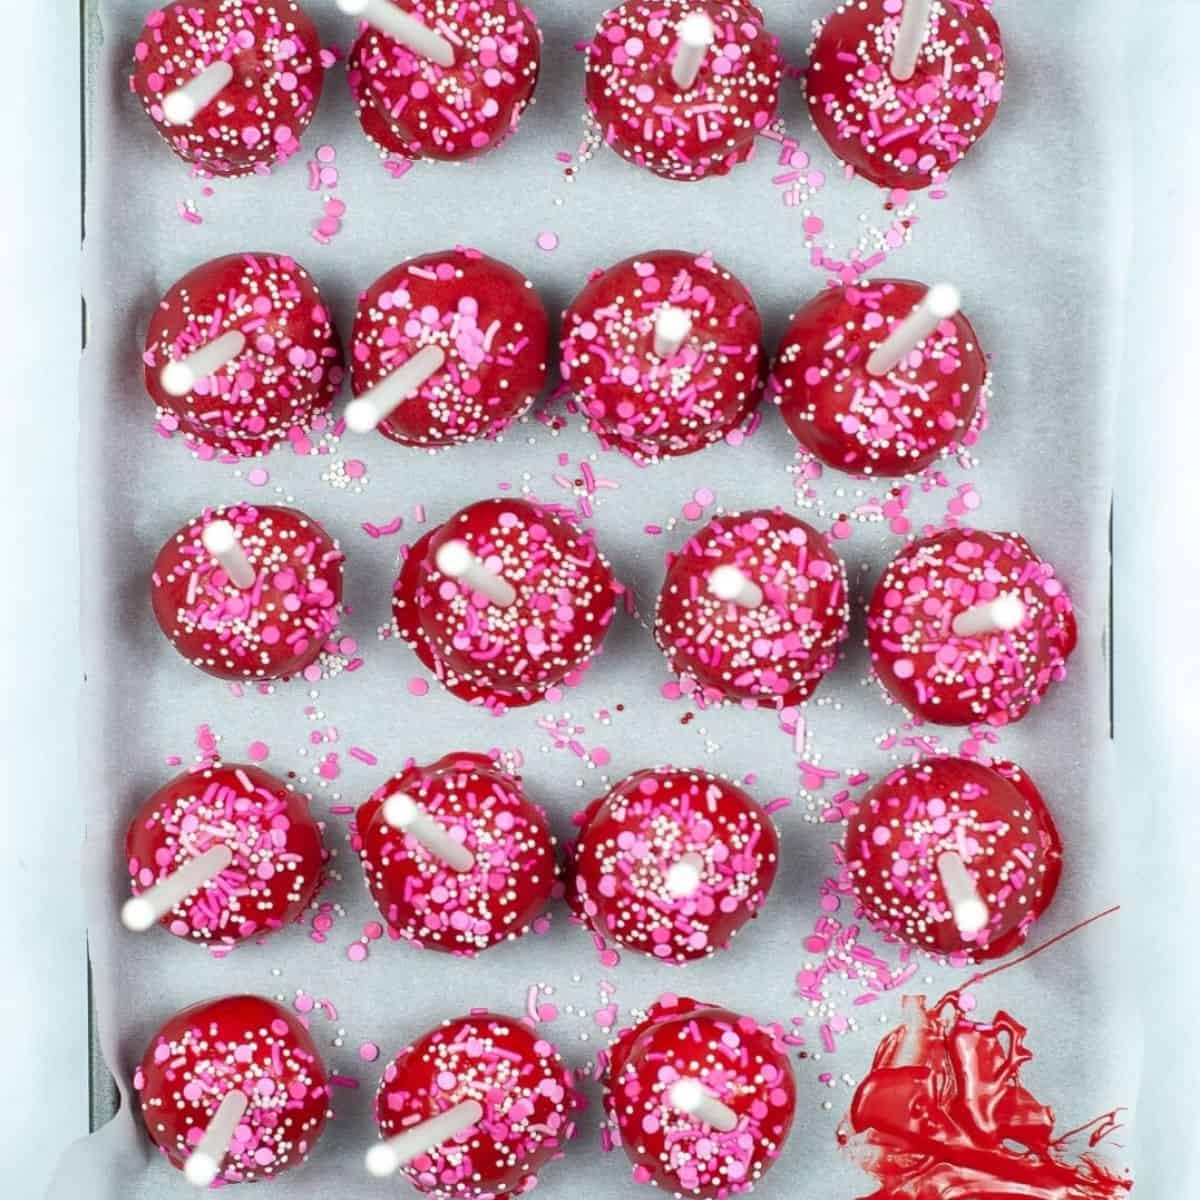 A sheet pan with red cake pops with pink sprinkles with cake